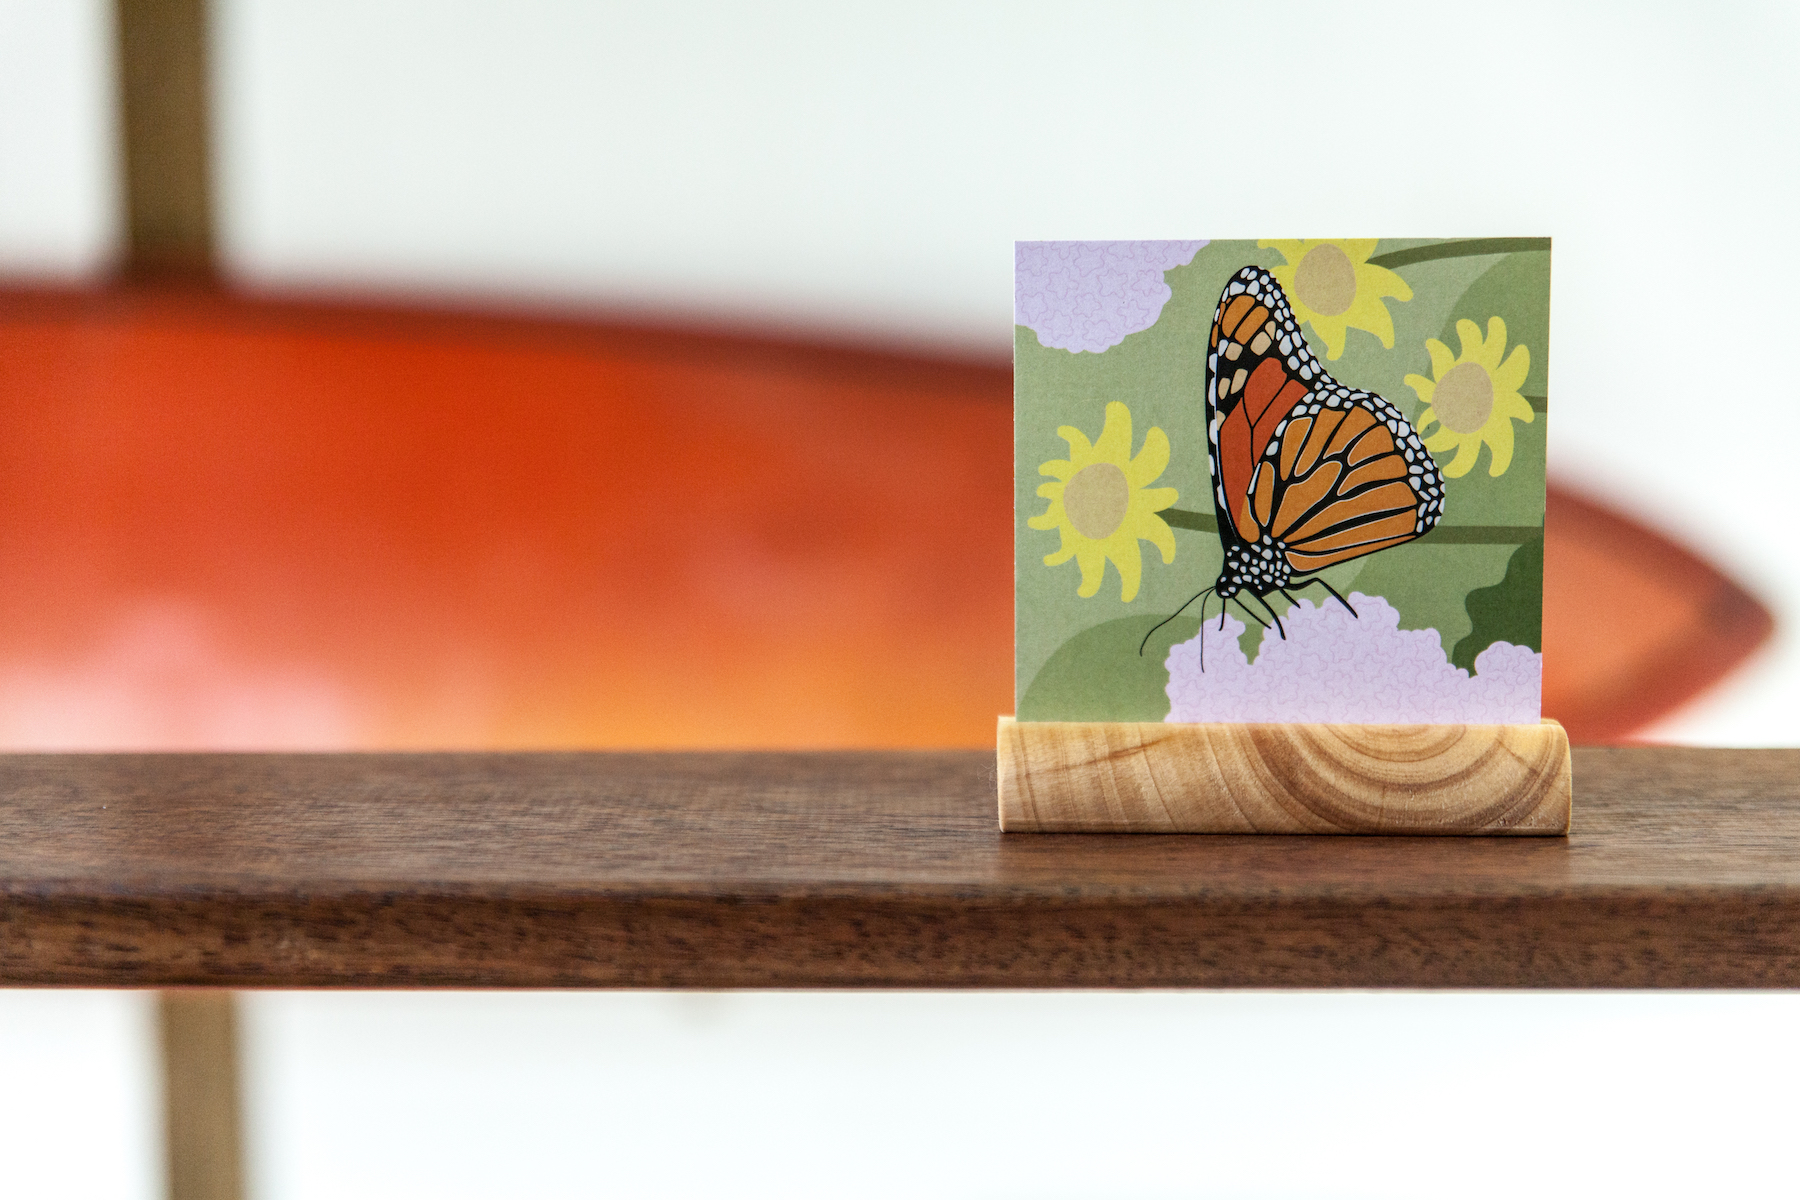 Handmade wood stand photo block cards Skwoodle handcrafted sustainable recyclable